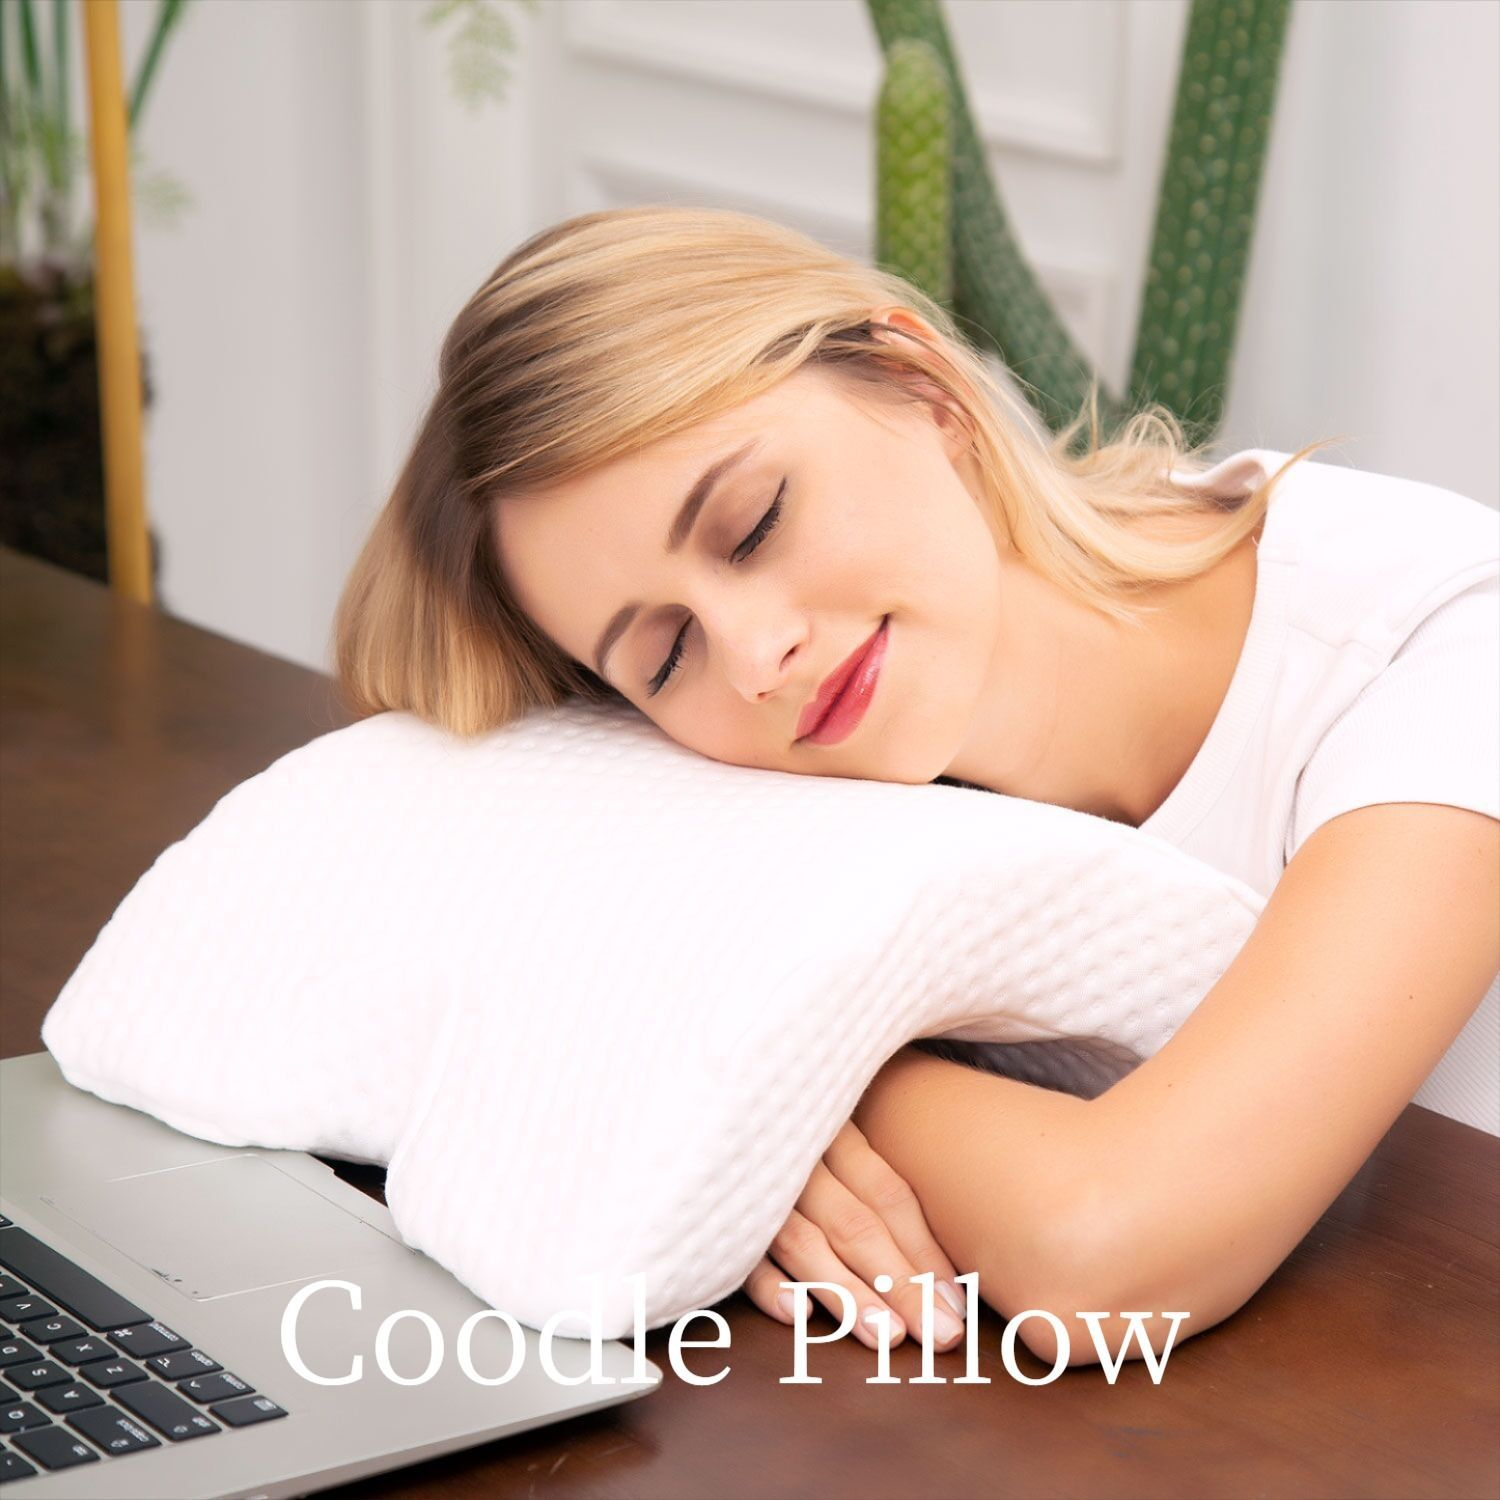 Coodle Pillow for Cuddling #Coodle